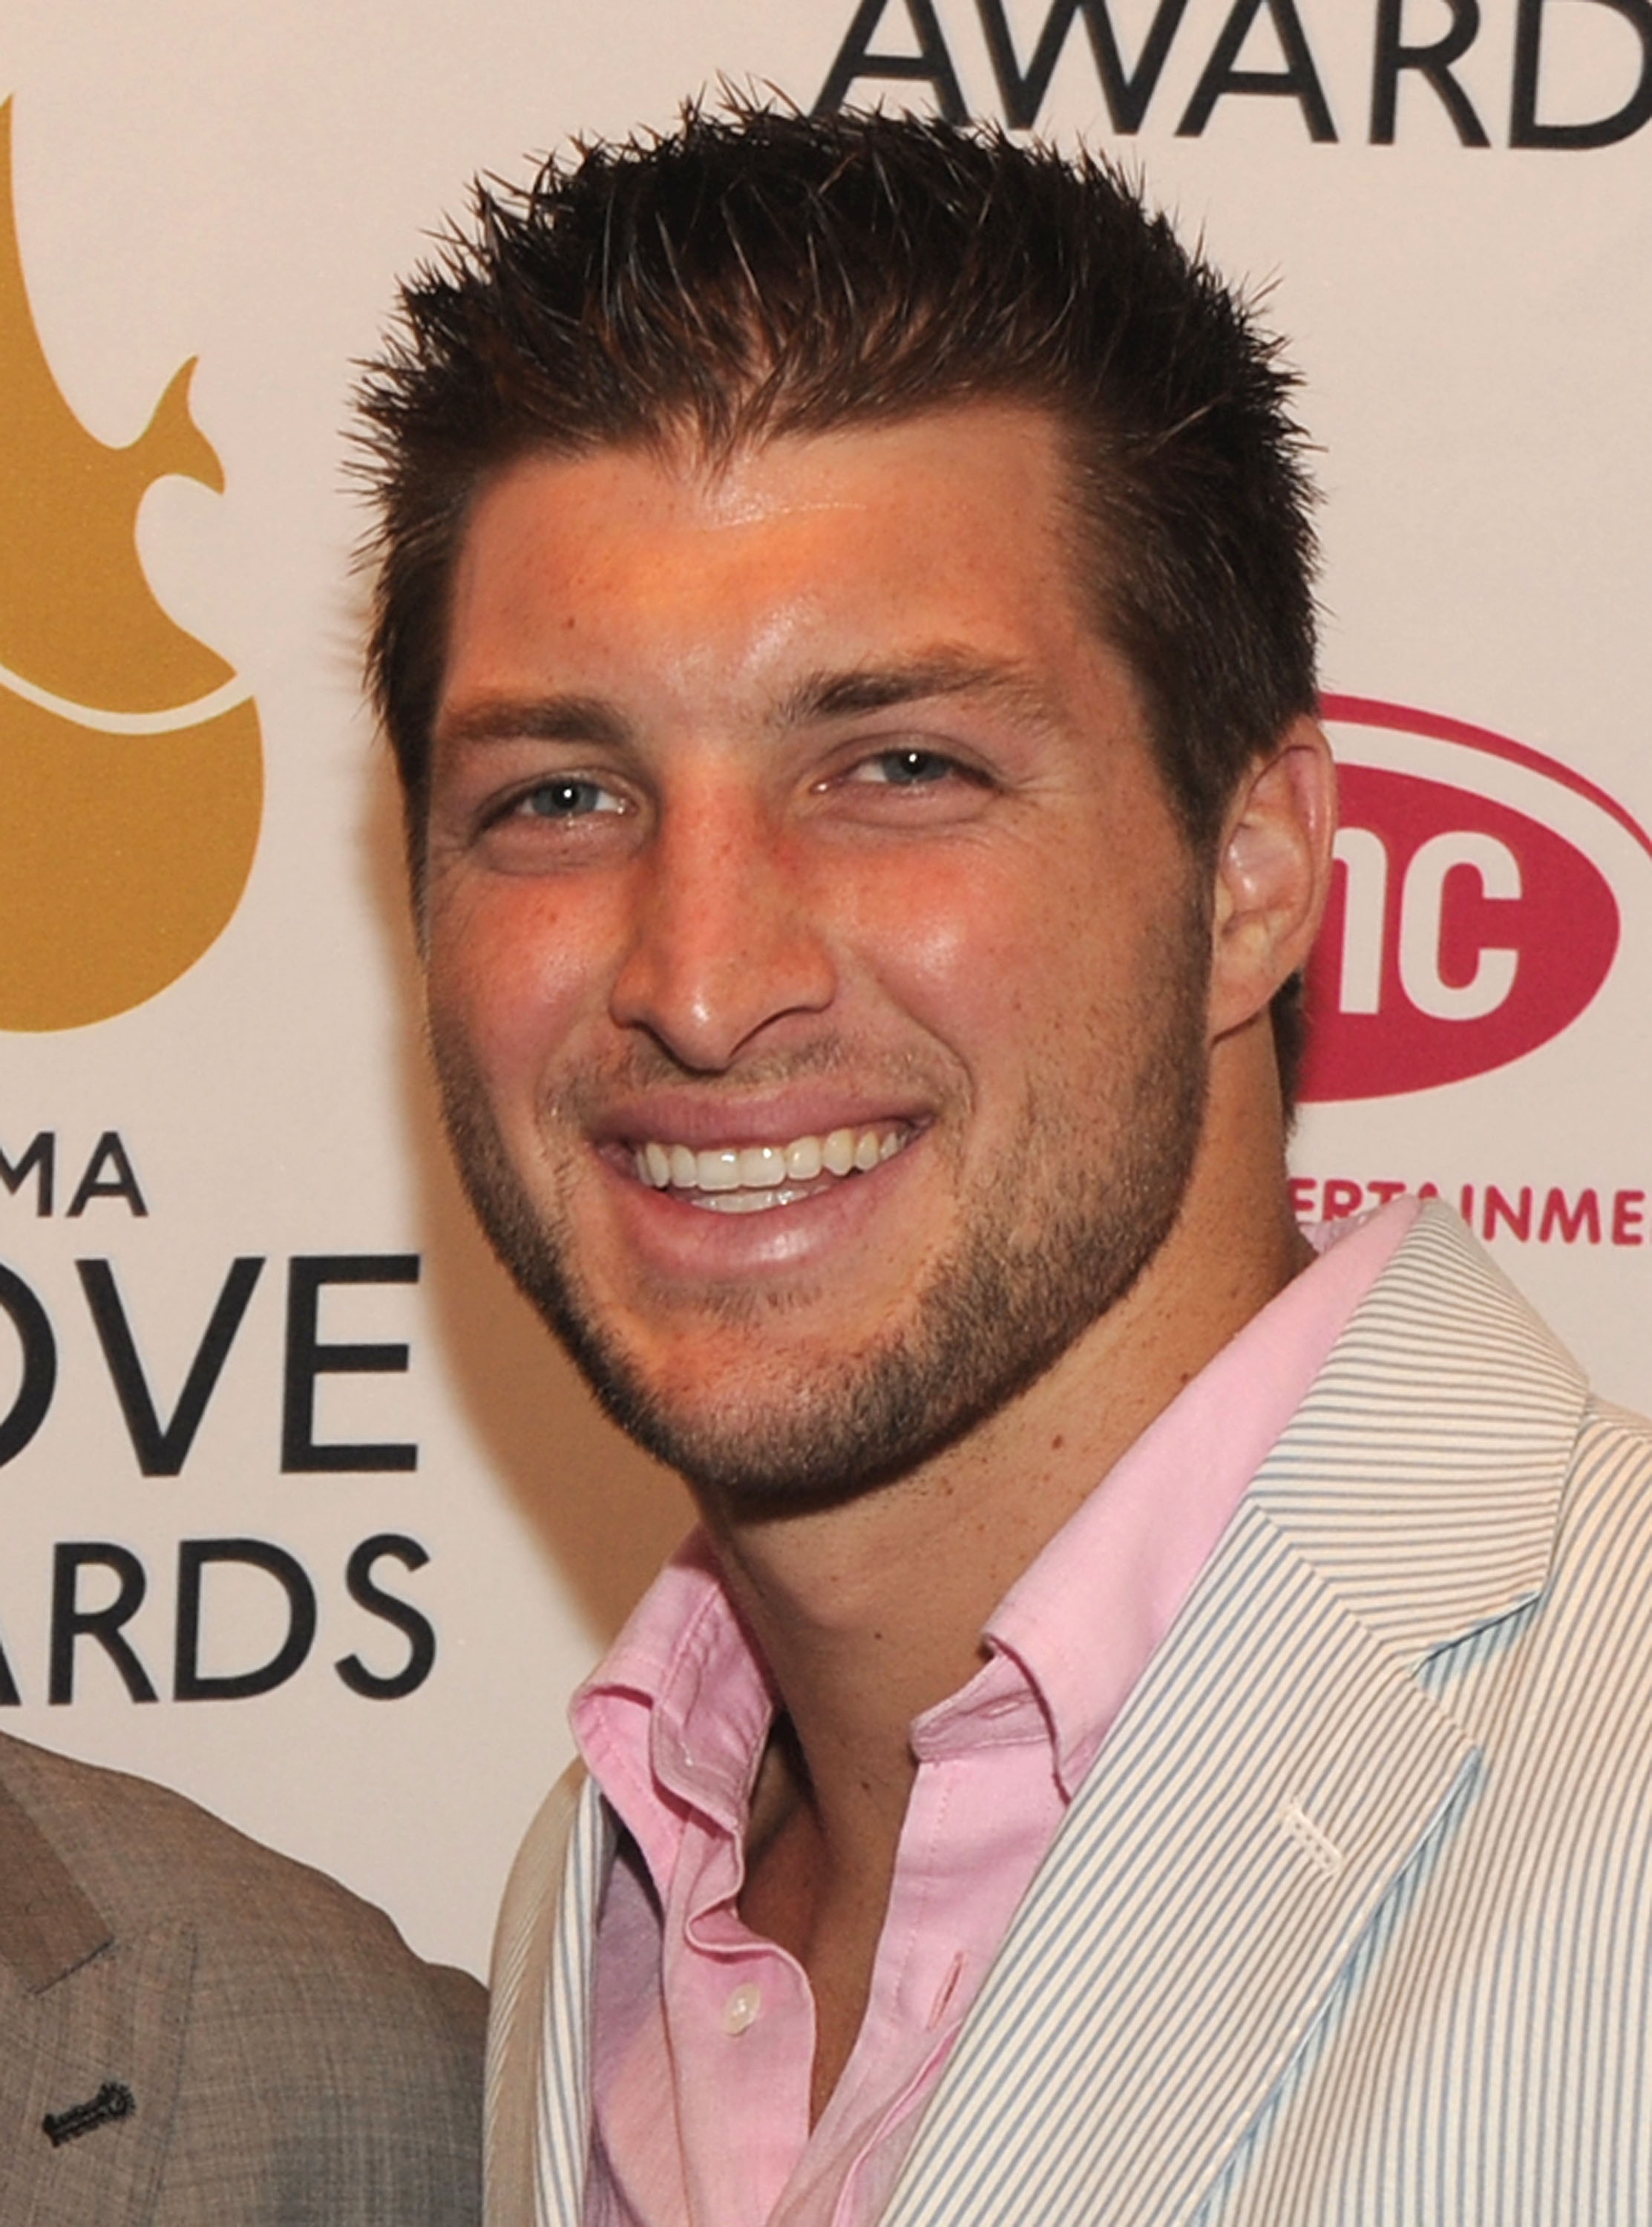 WWTD: What Would Tebow Do